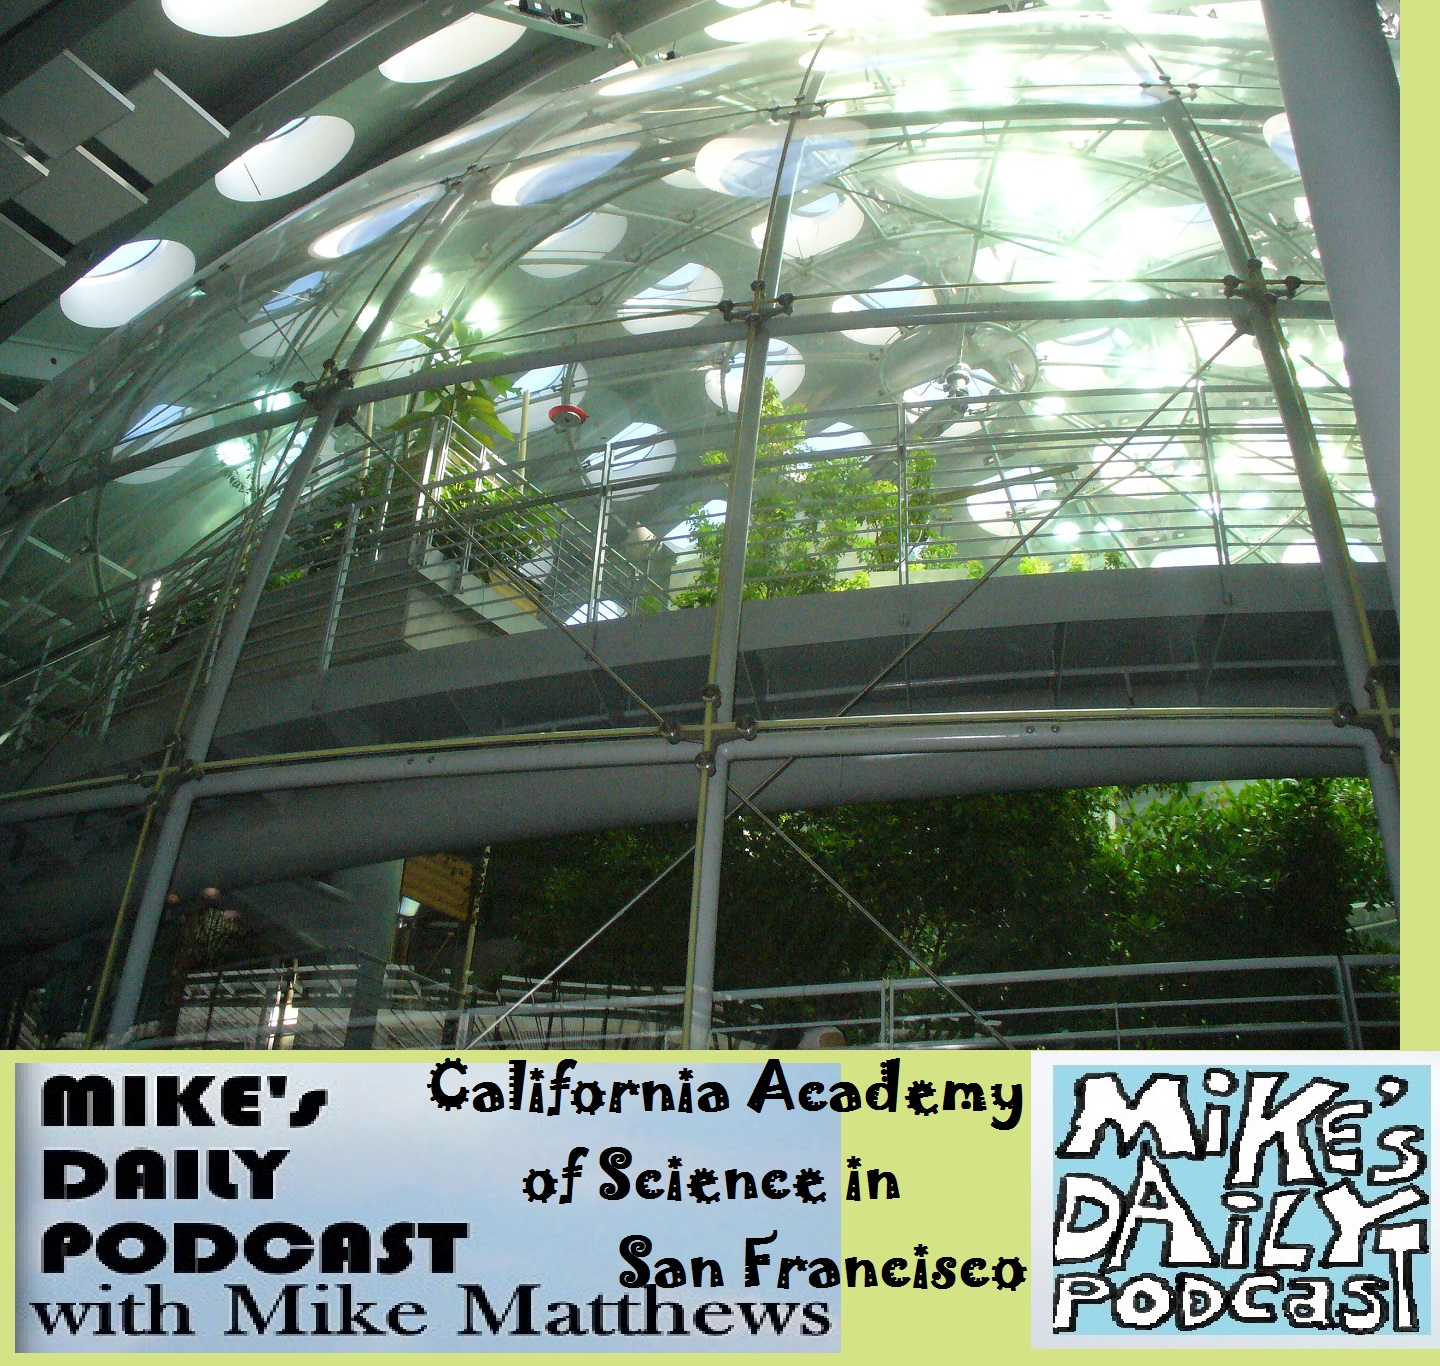 mikes-daily-podcast-1219-california-academy-of-science-sf